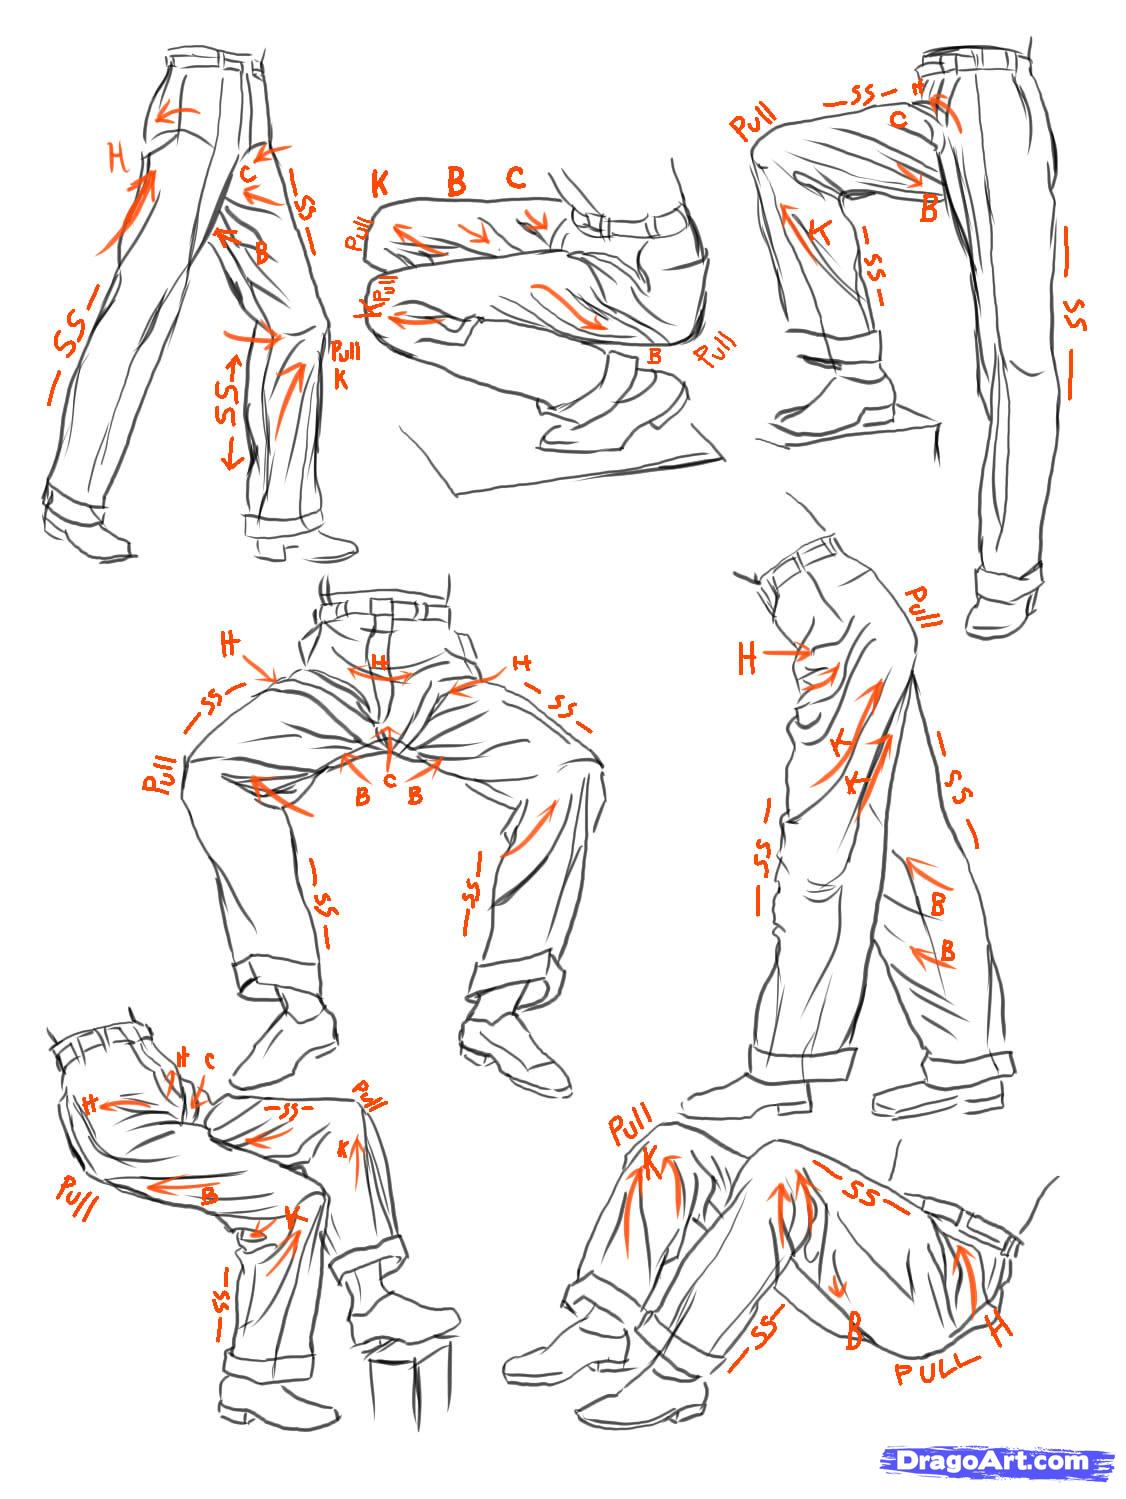 1126x1499 How To Sketch Anime Clothes, Step By Step, Anime People, Anime